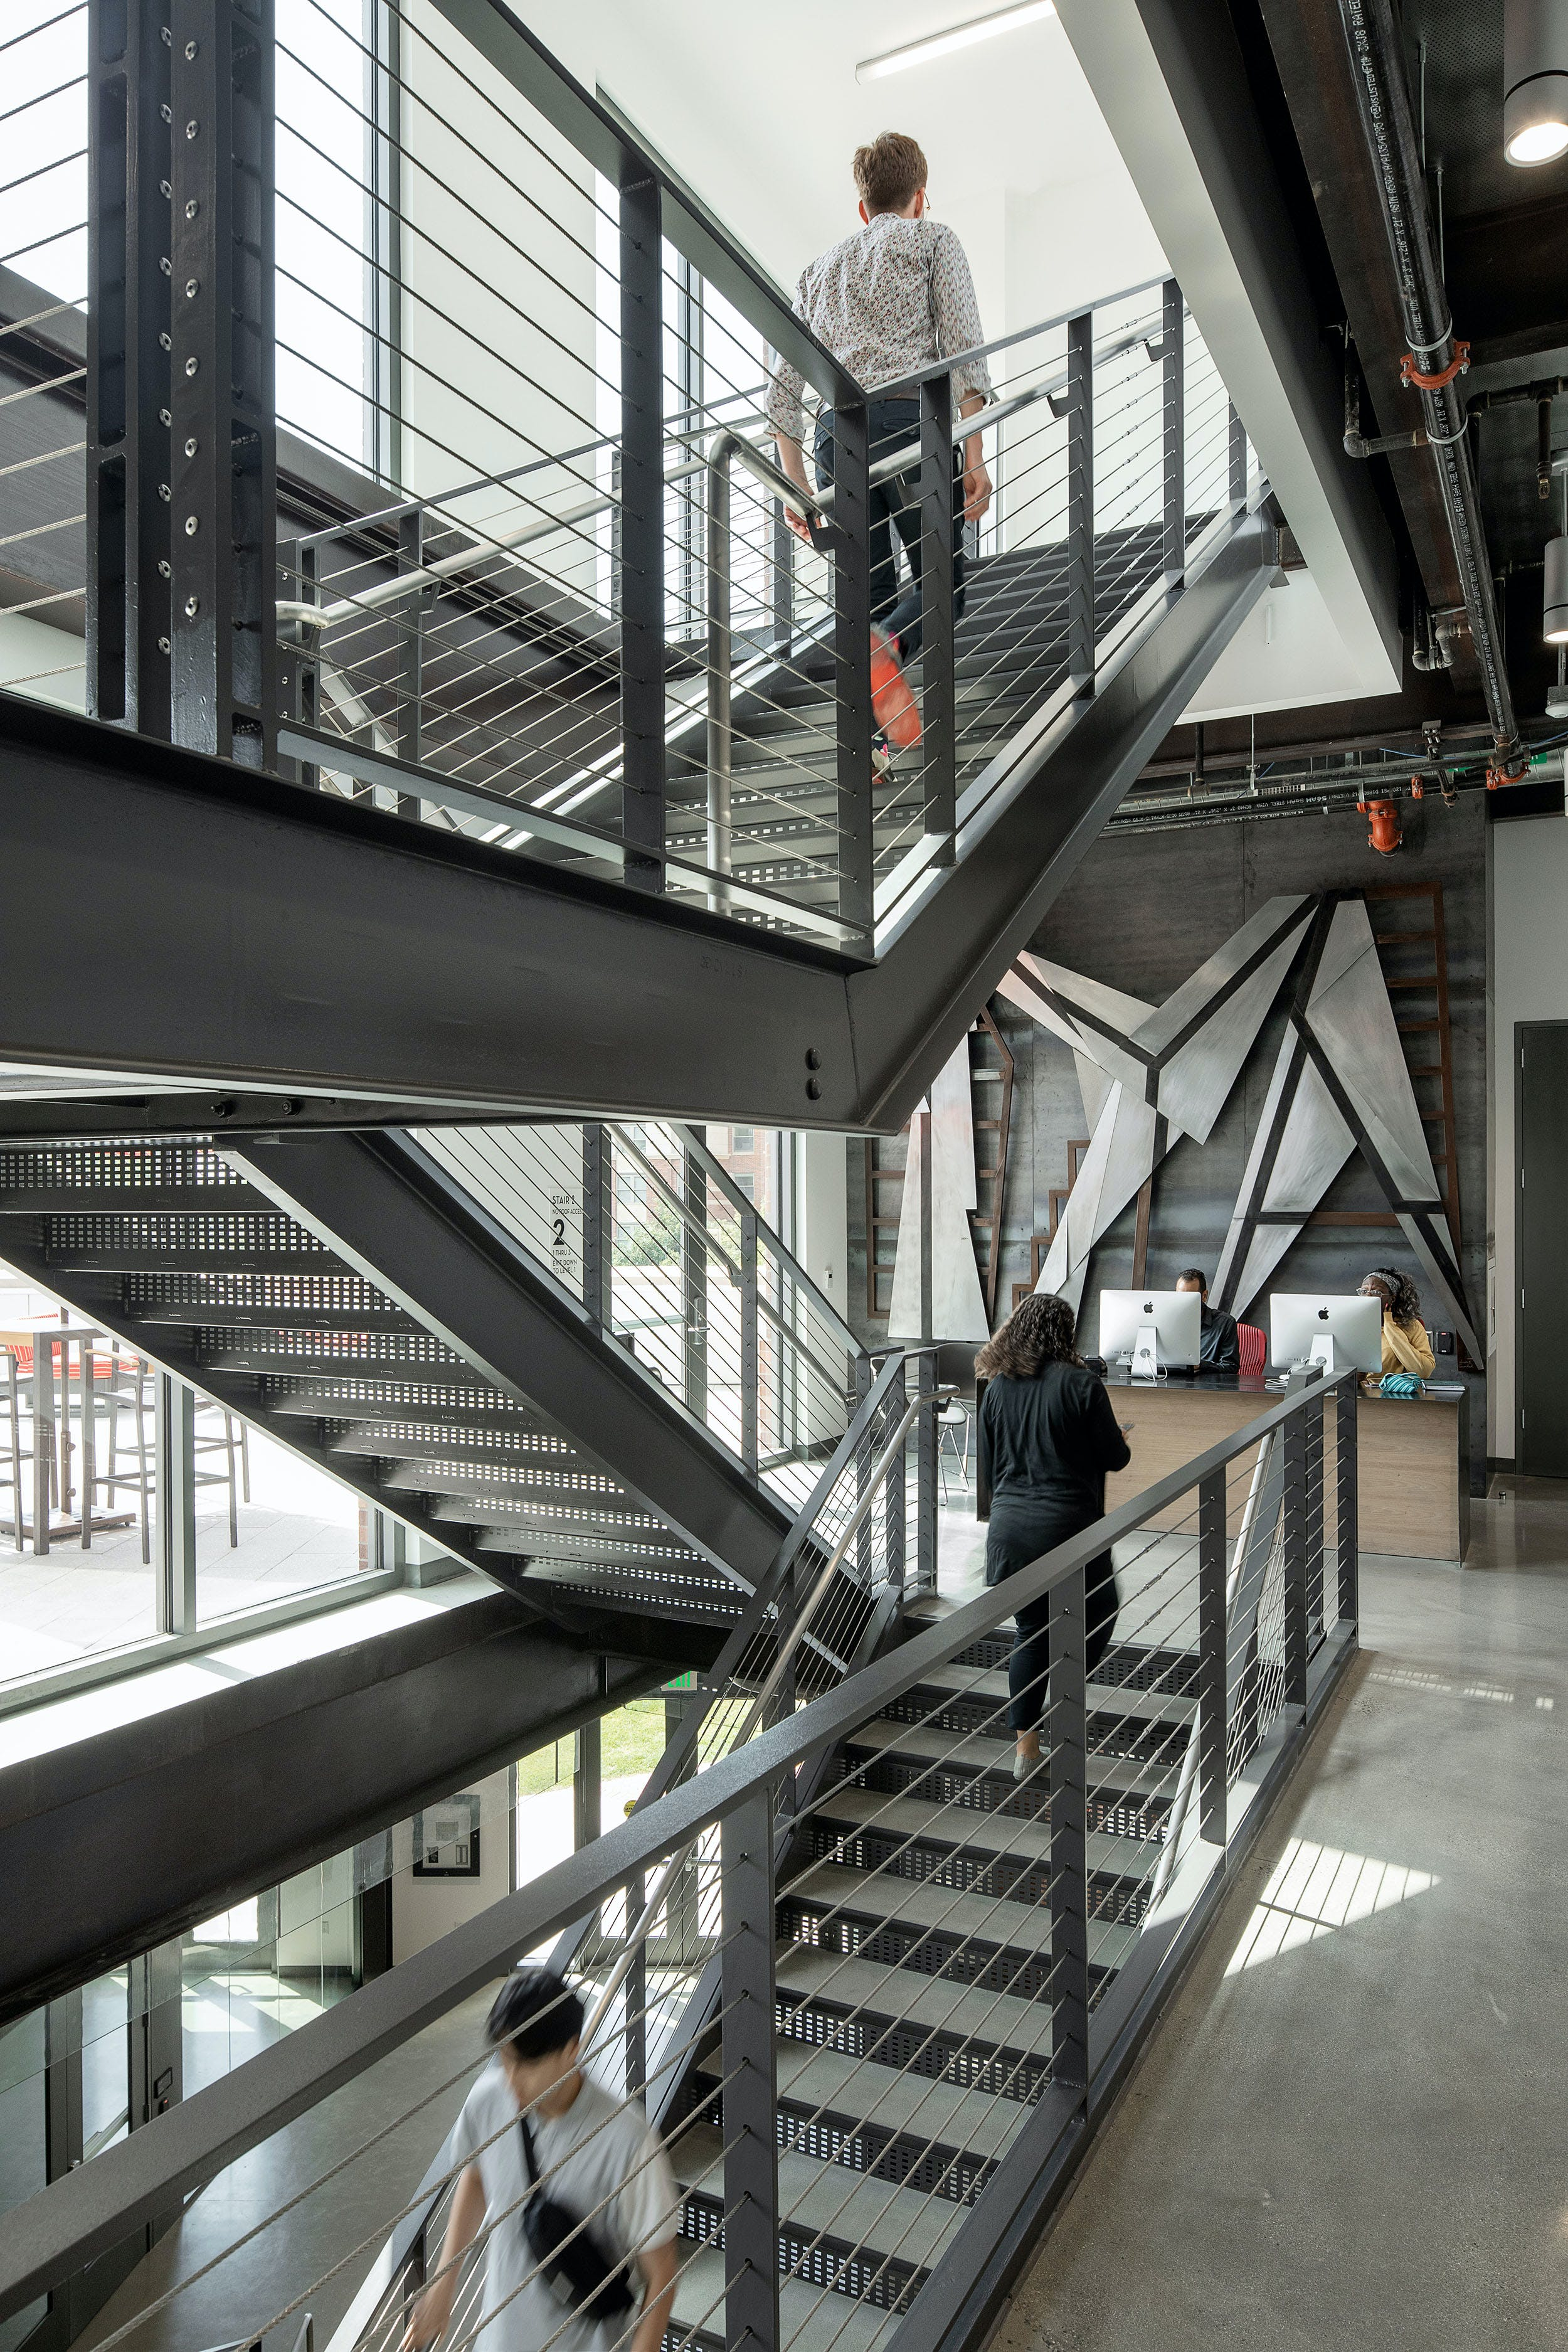 2 flights of steel staircase with people walking up